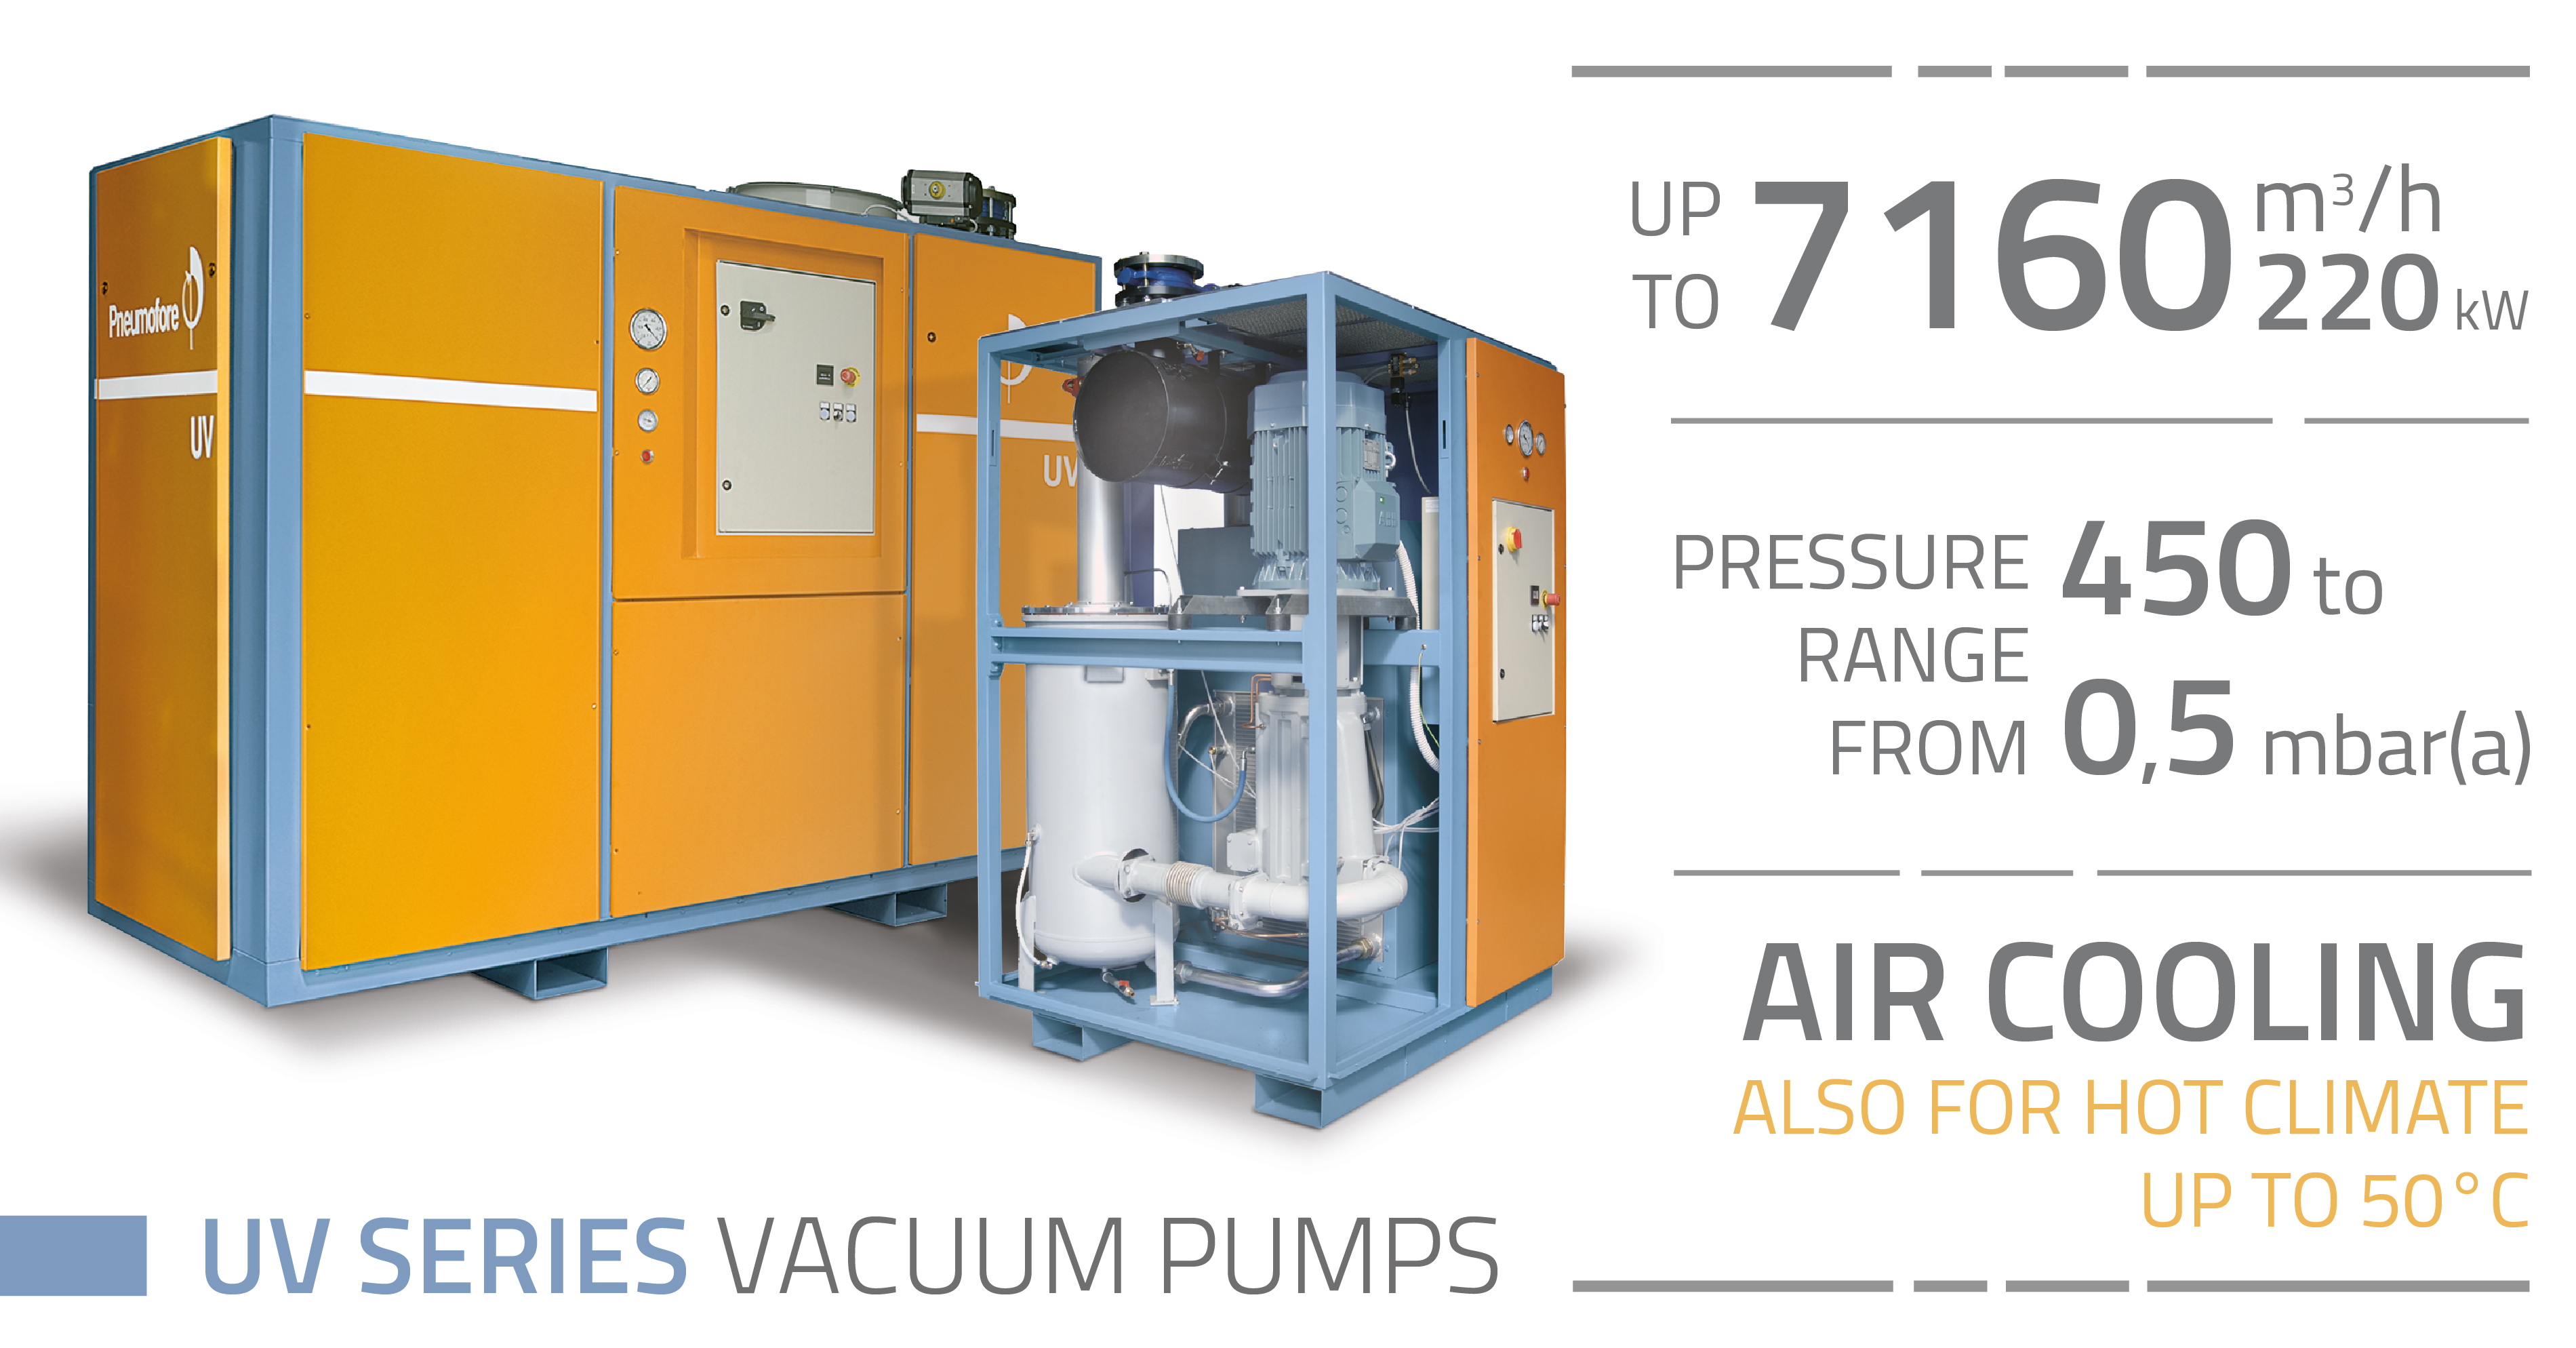 Pneumofore Rotary Vane Vacuum Pumps - UV Series